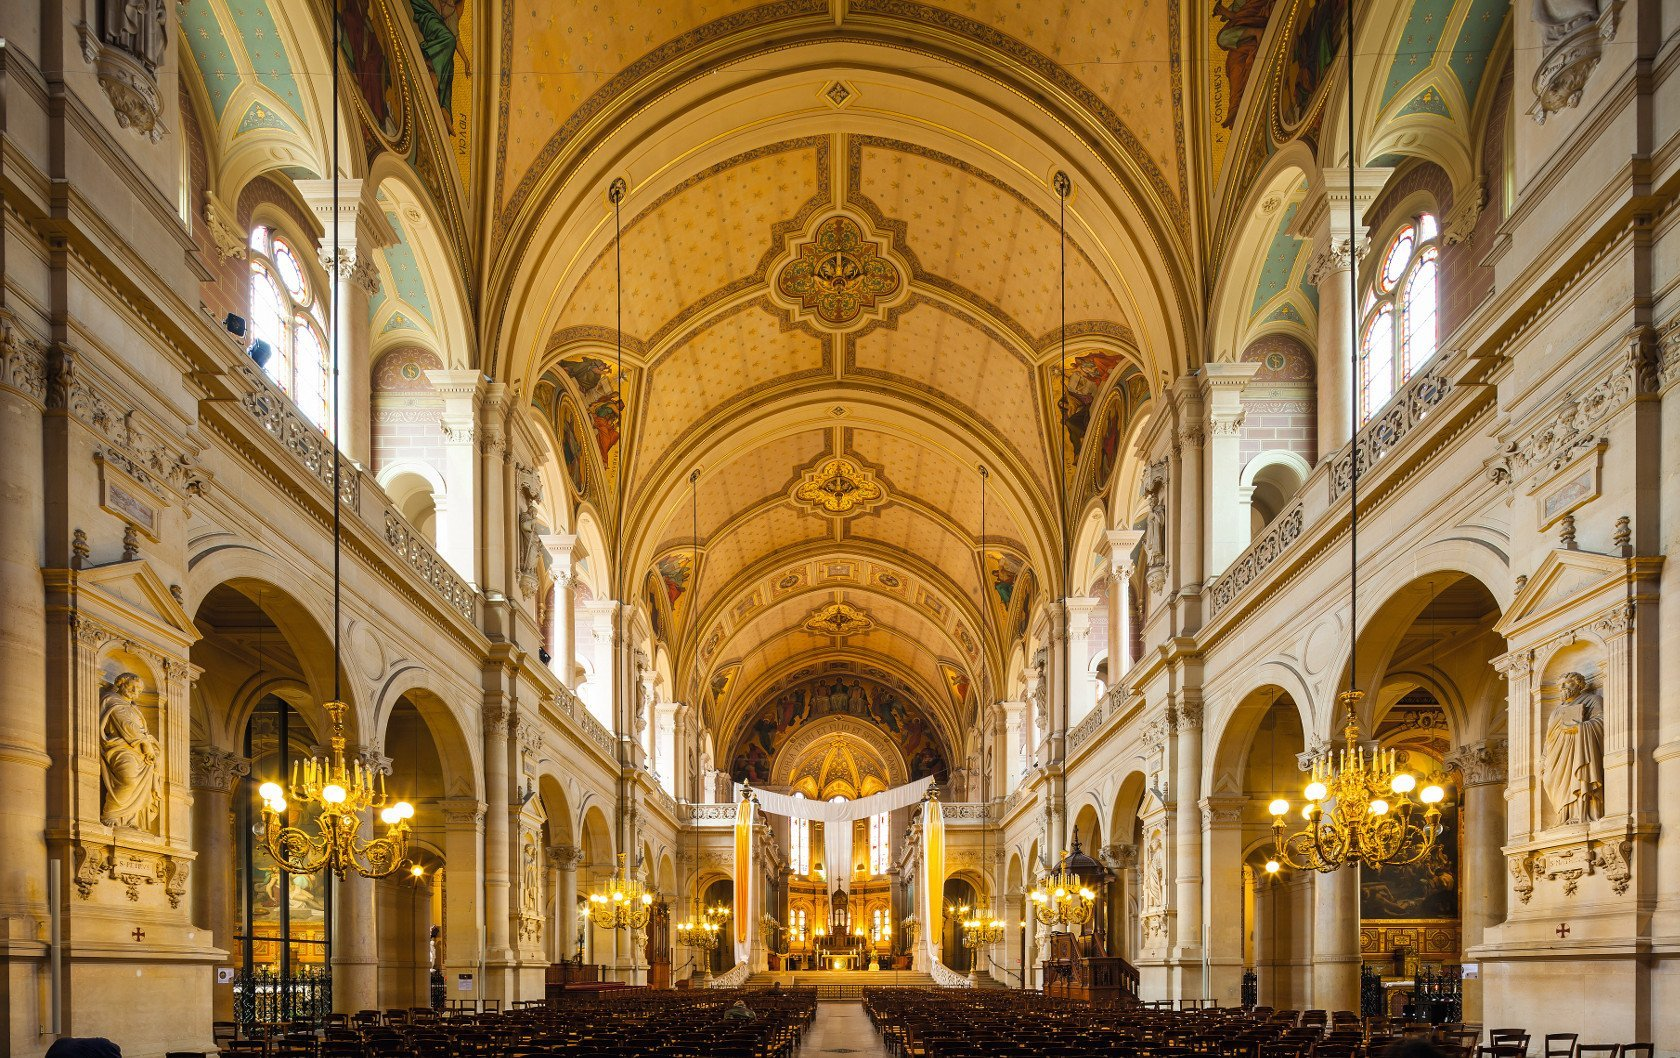 6 Churches in Paris That Aren't Notre Dame